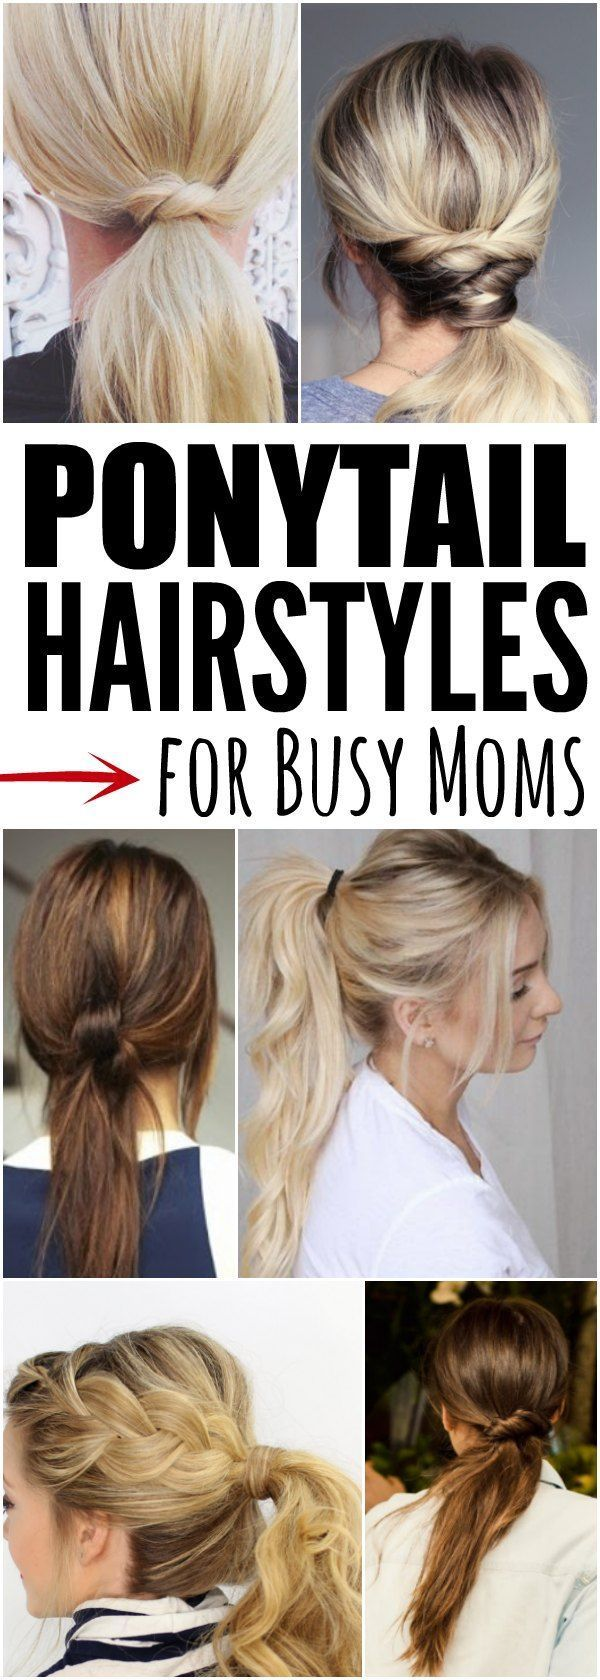 quick and easy ponytail hairstyles for busy moms - ponytail